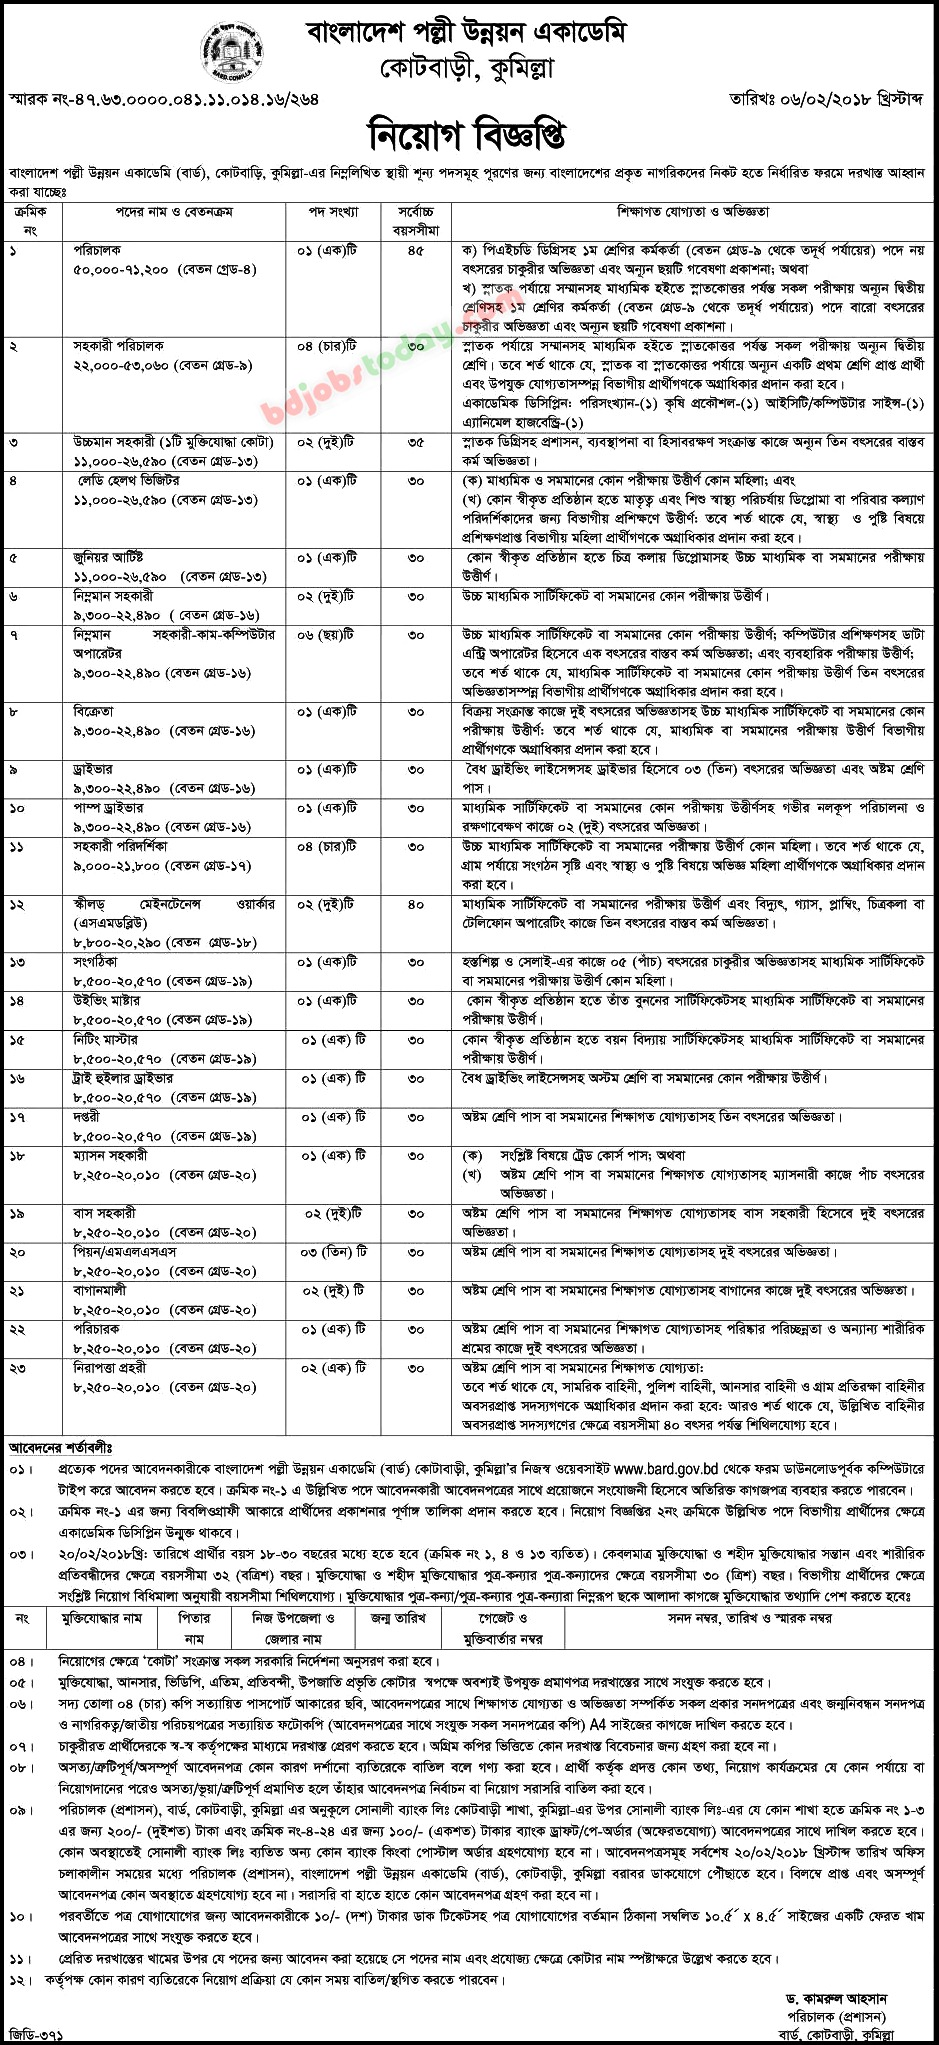 Bangladesh Academy for Rural Development (BARD) jobs